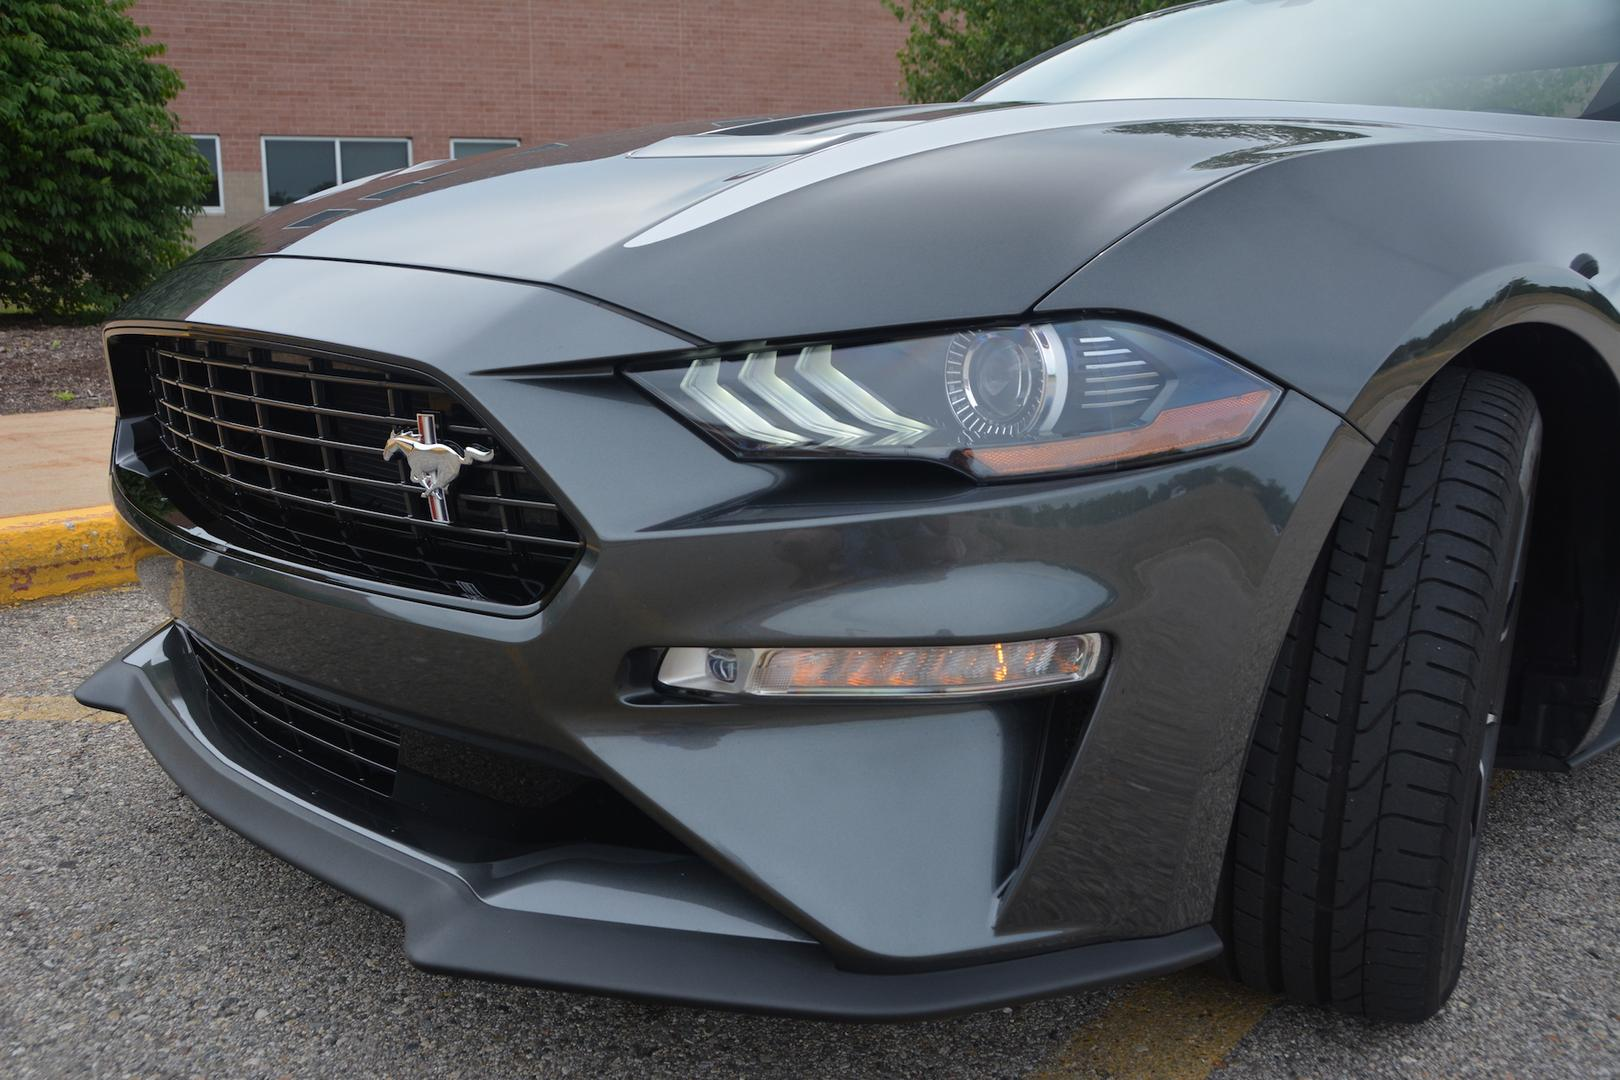 Ford Mustang EcoBoost Headlights